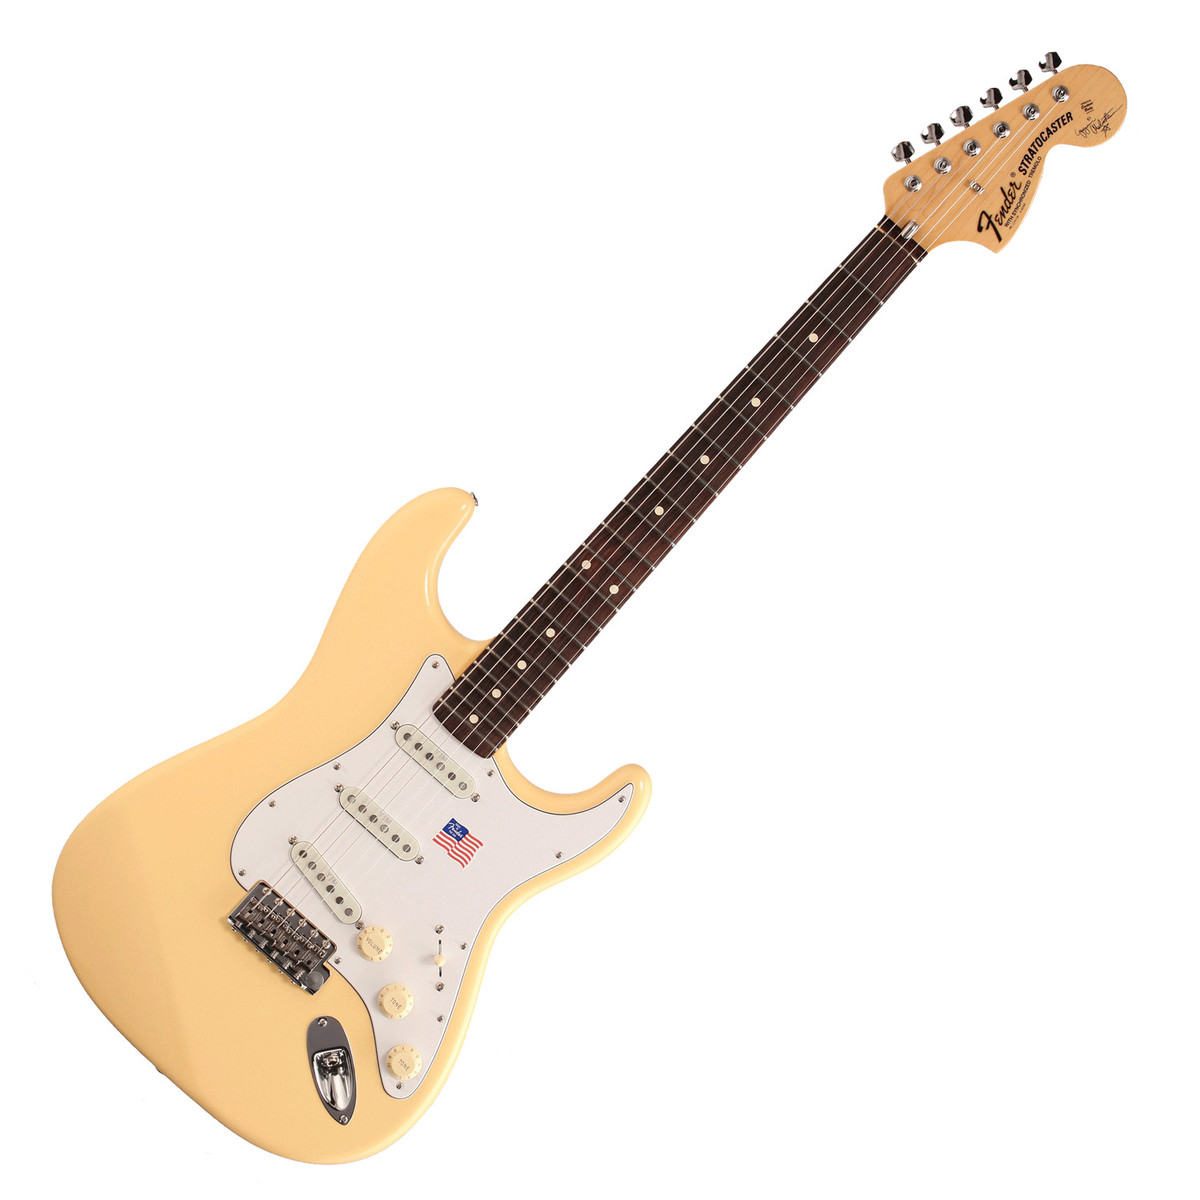 Charming Ibanez Rg Wiring Thin Ibanez Wiring Square Dimarzio Switch Security Diagram Youthful One Humbucker One Volume GraySolar Panel Wiring Fender Yngwie Malmsteen Stratocaster Guitar, RW Vintage White At ..